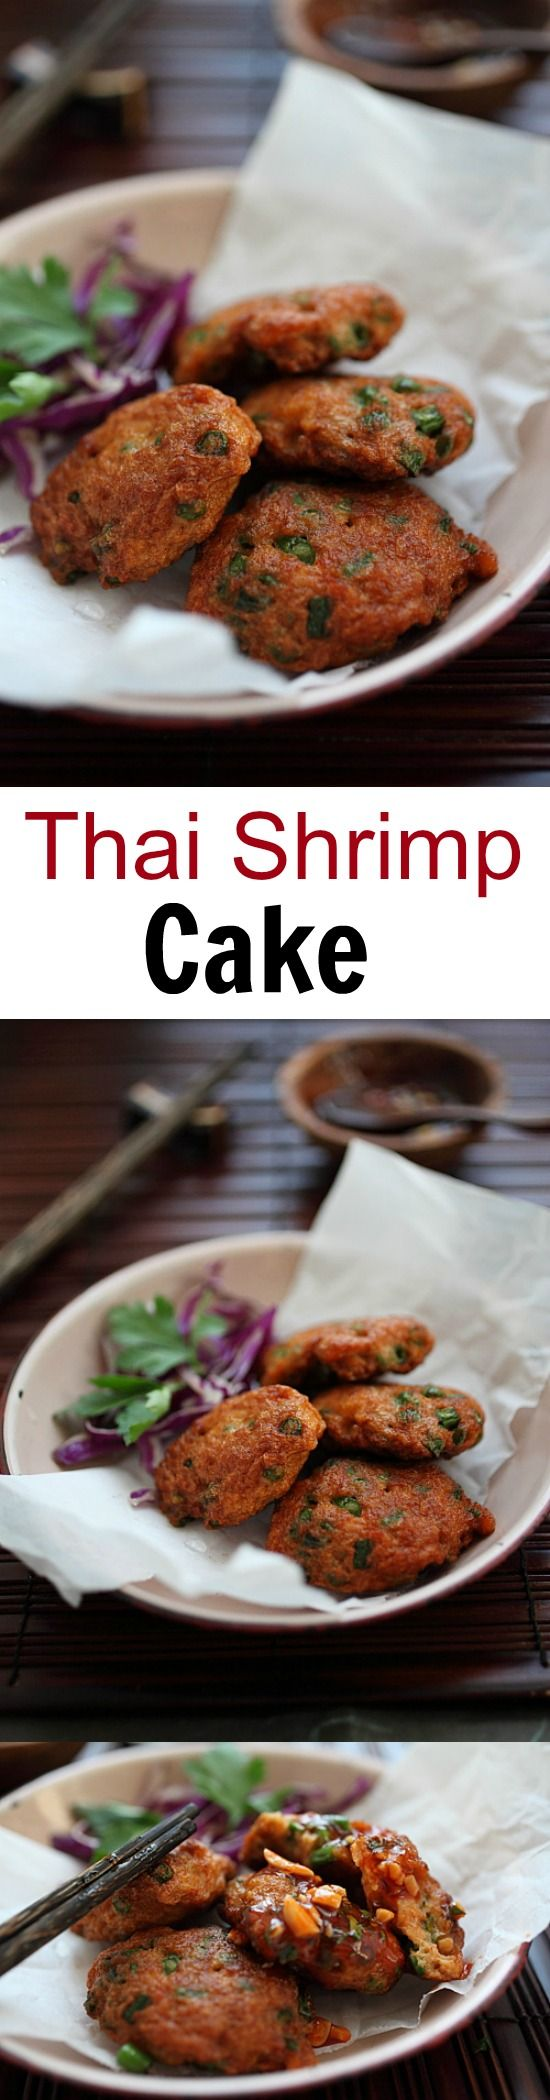 ... Thai shrimp cake ever, with sweet chili sauce. Get the easy recipe now